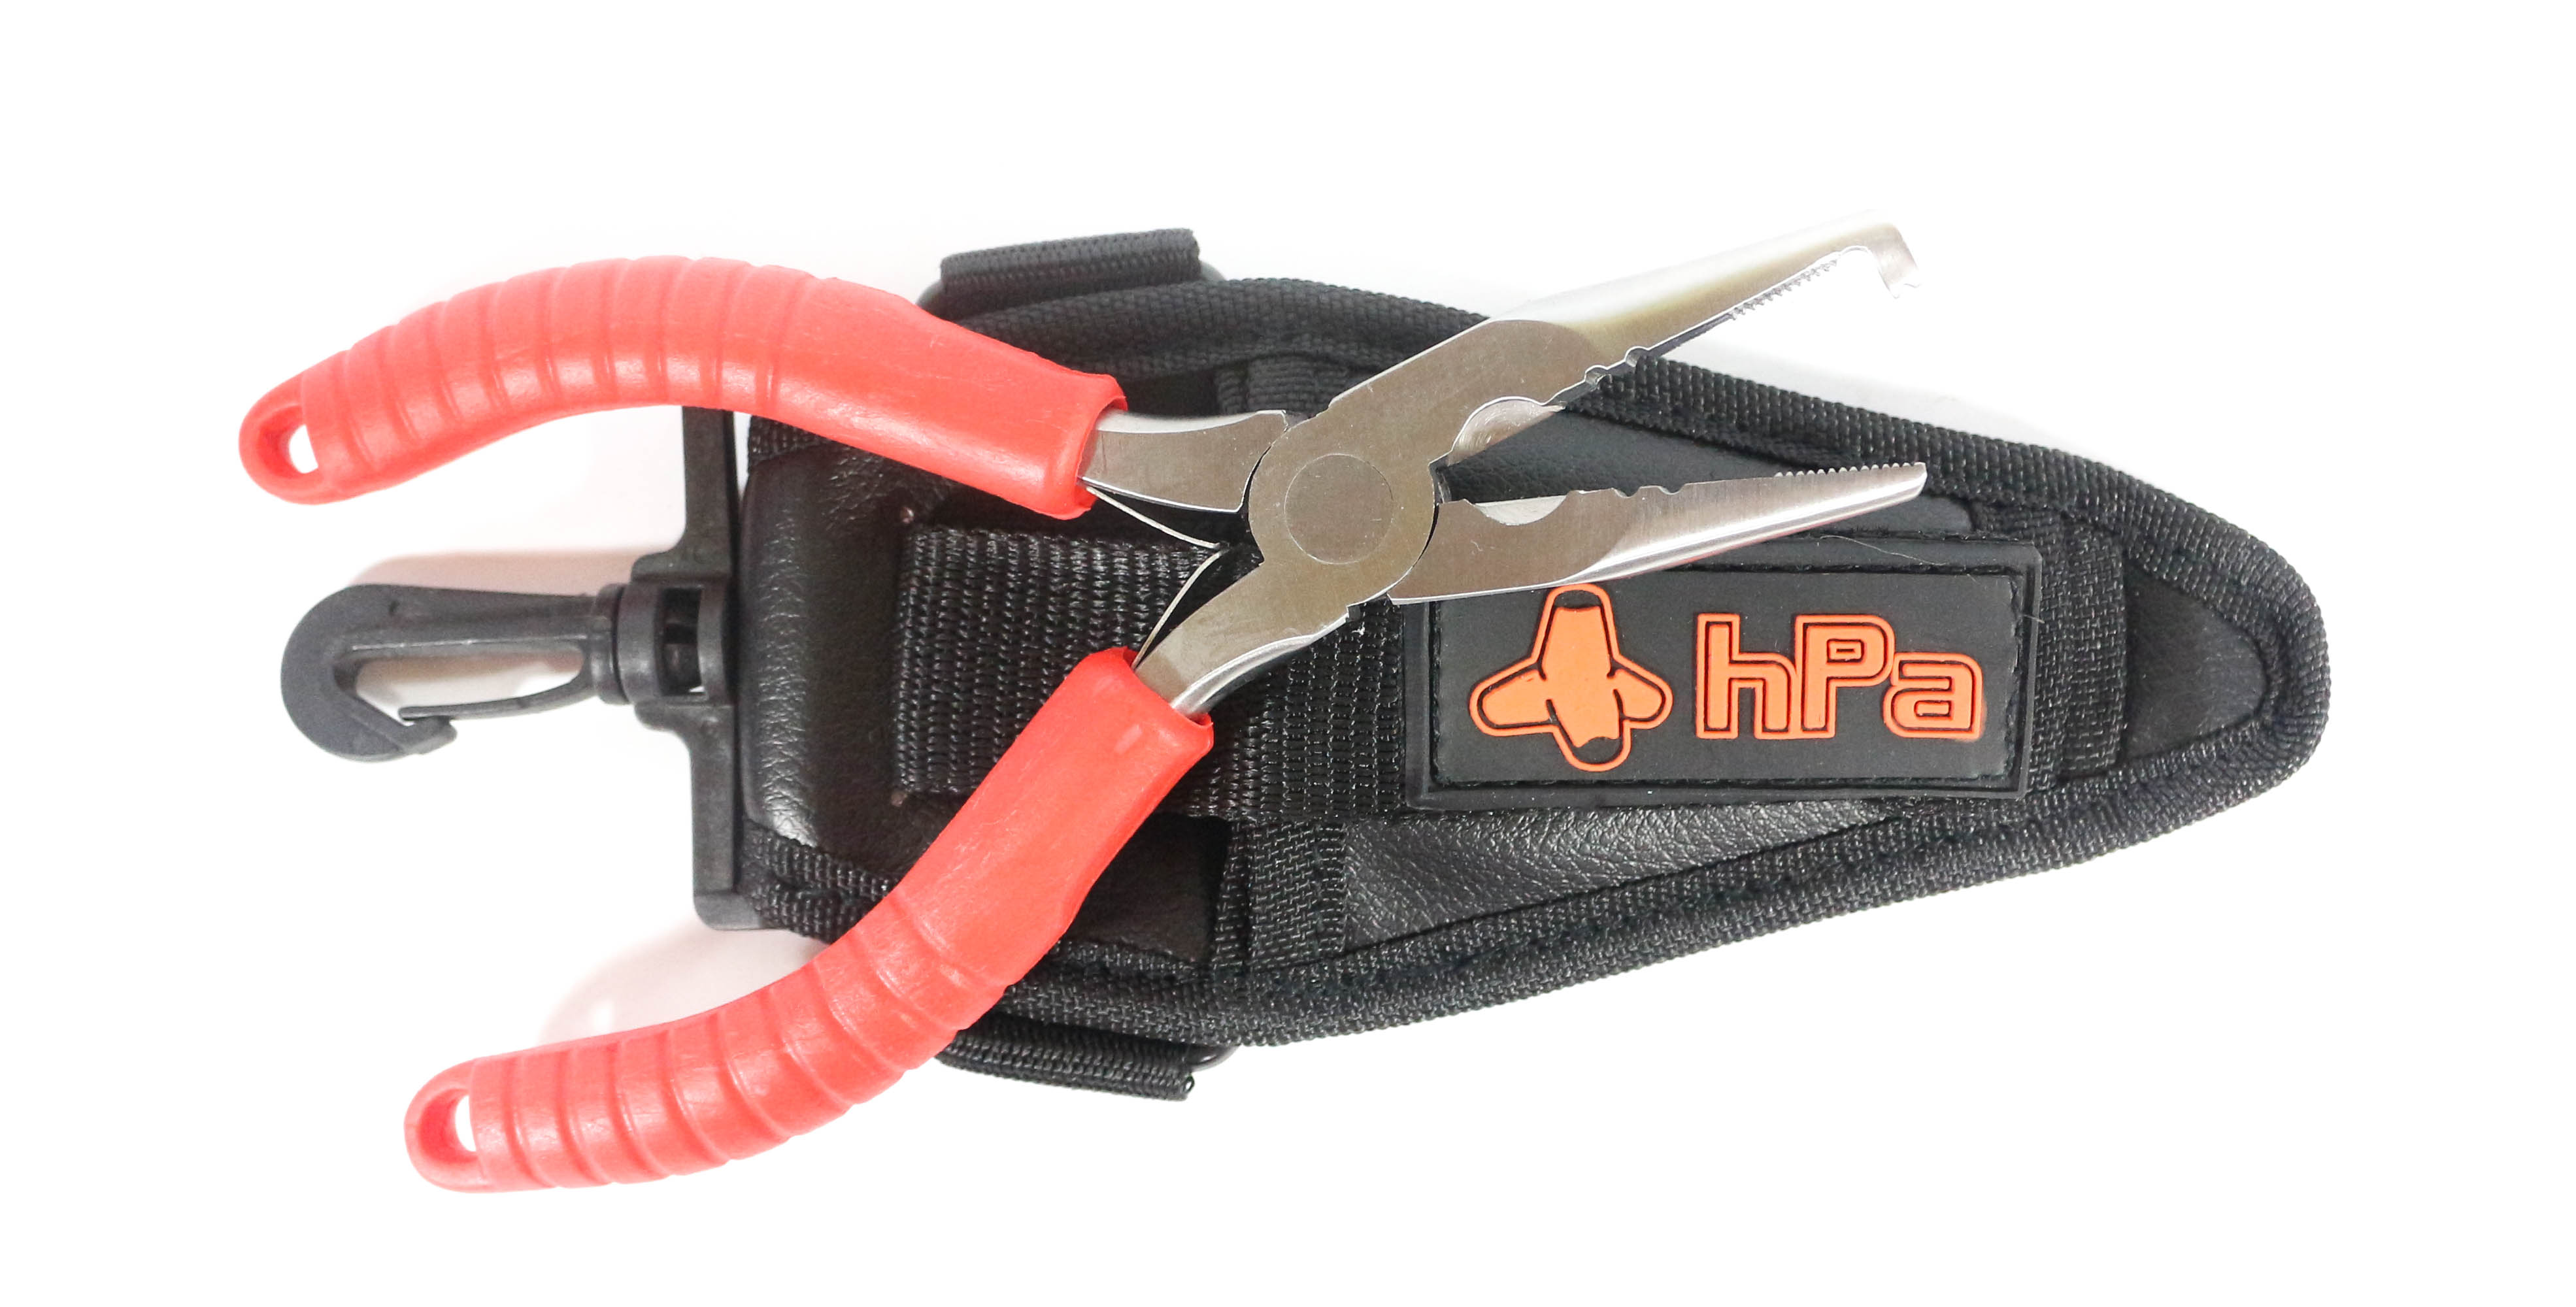 HPA Pliers Split Ring GT Big Game Size 5 - 12 Rings Holster Black (0189)